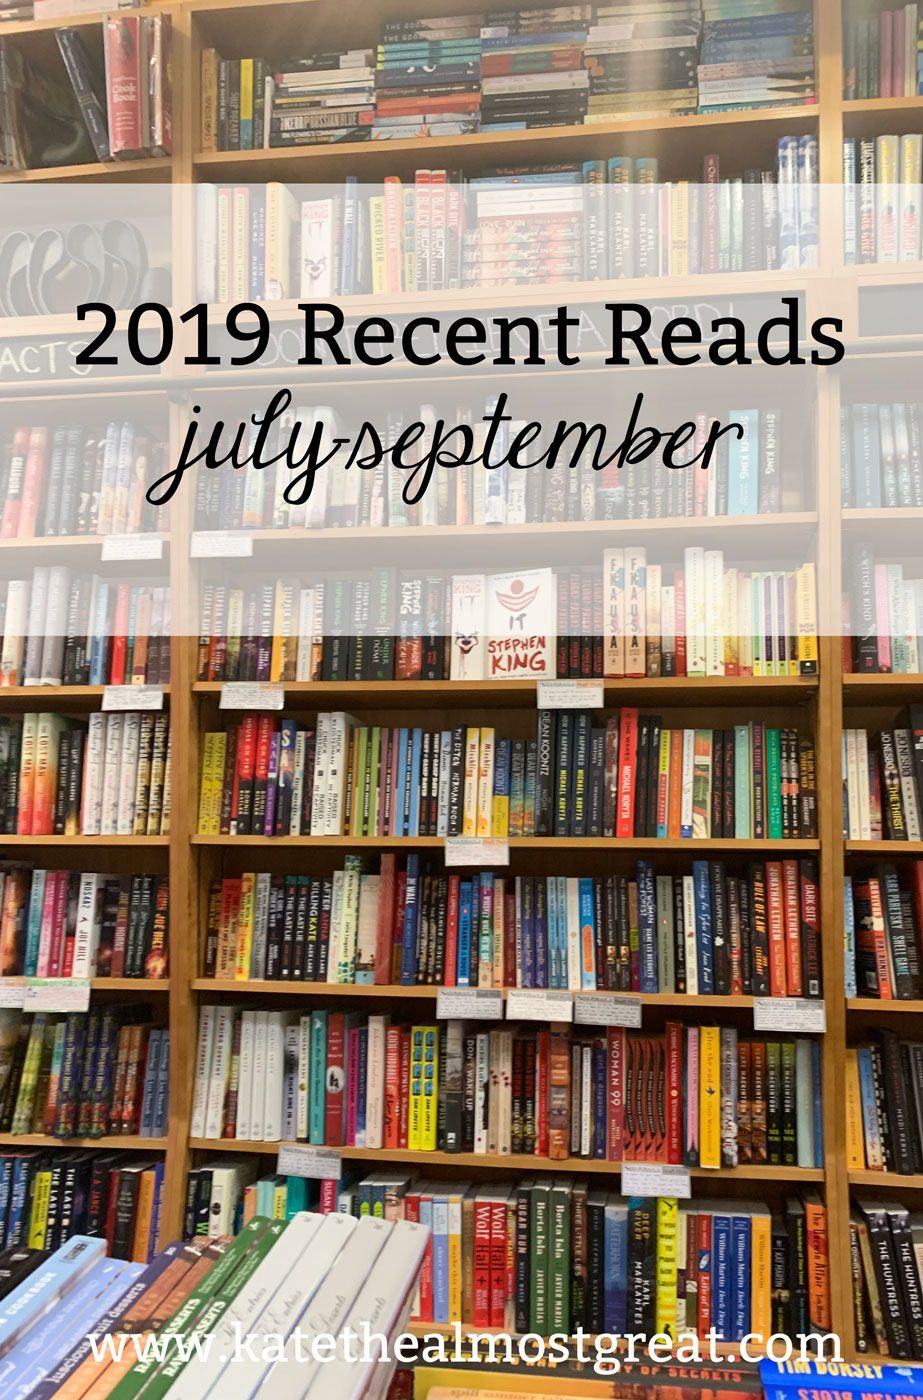 2019 Recent Reads July September Kate The Almost Great Health Lifestyle Blog Books To Read Modern Novel Books Everyone Should Read